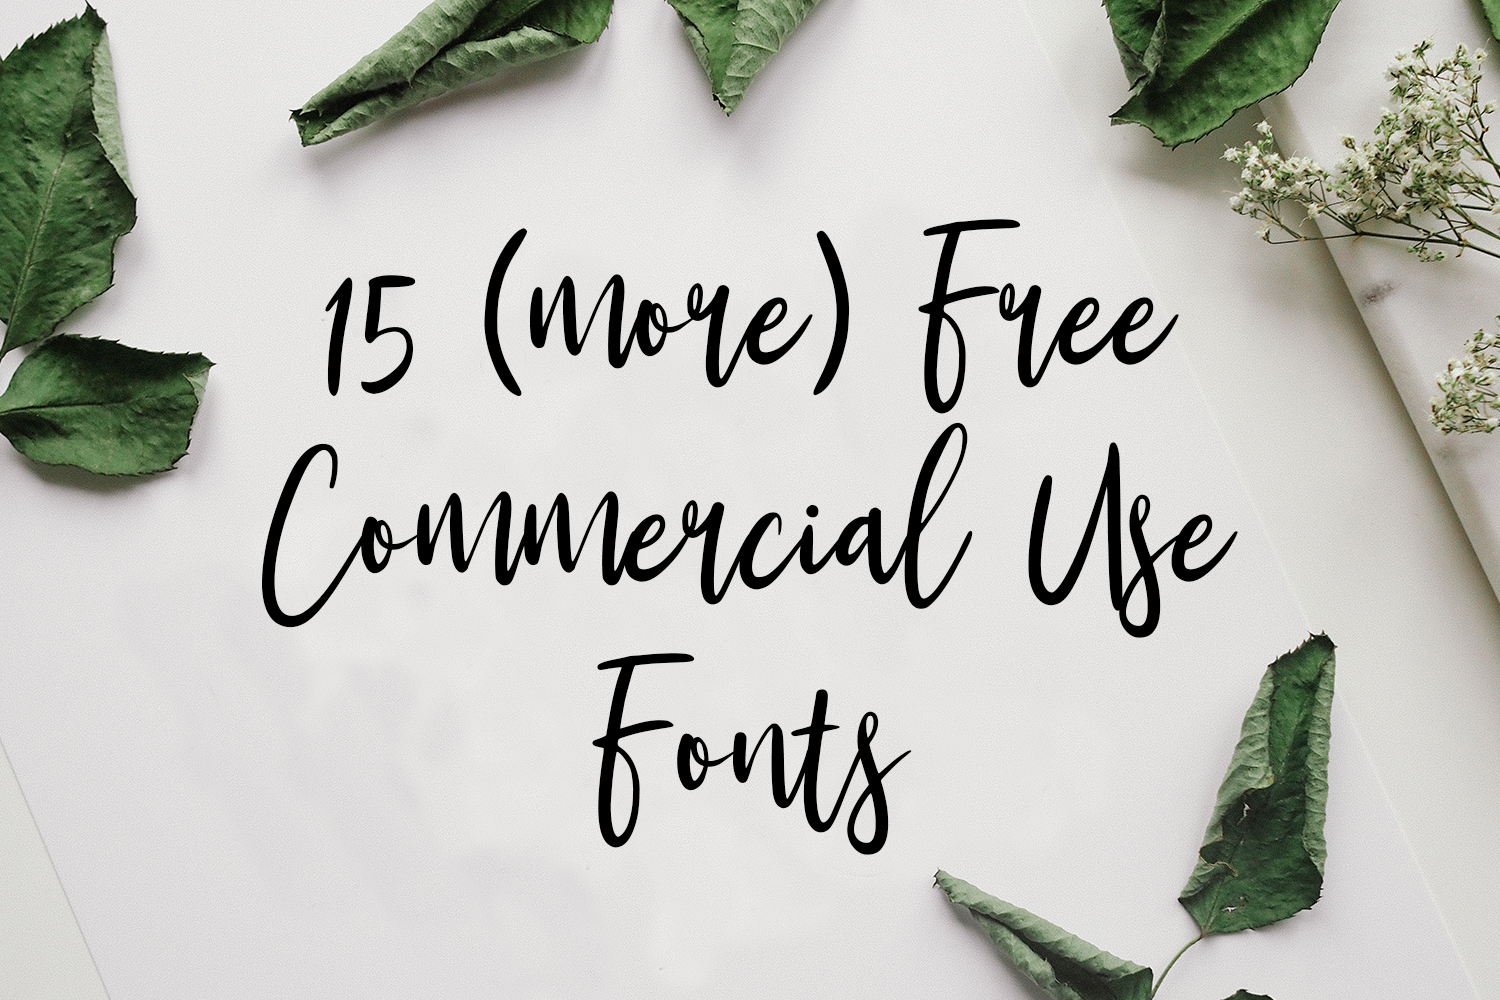 15 (more) Free Commercial Use Fonts